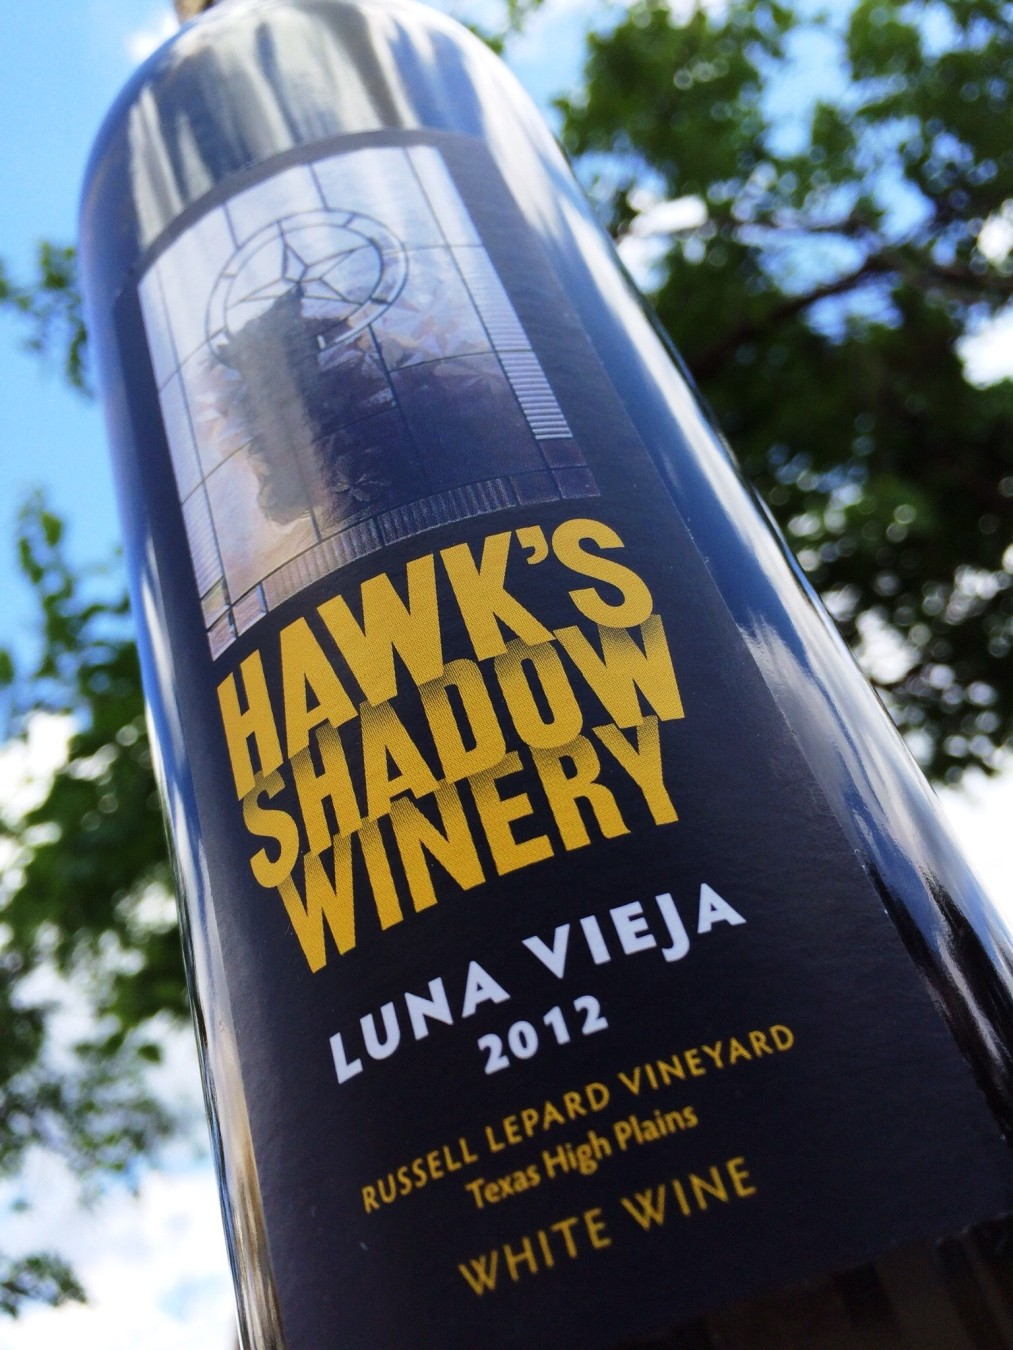 Hawk's Shadow Winery Luna Vieja bottle